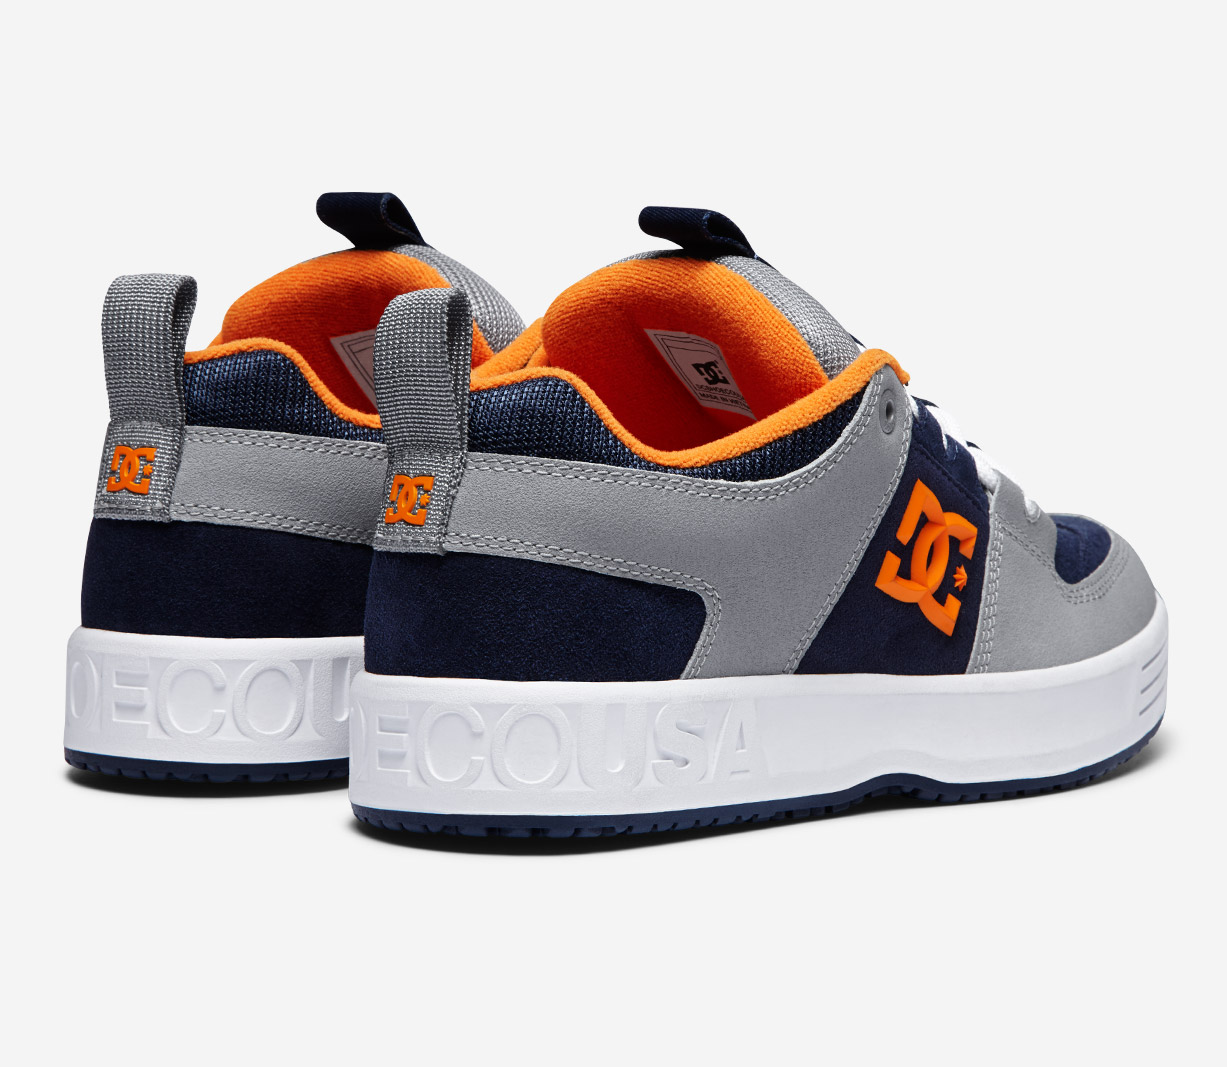 7e8ed642998a Heritage - Collections - Mens - DC Shoes